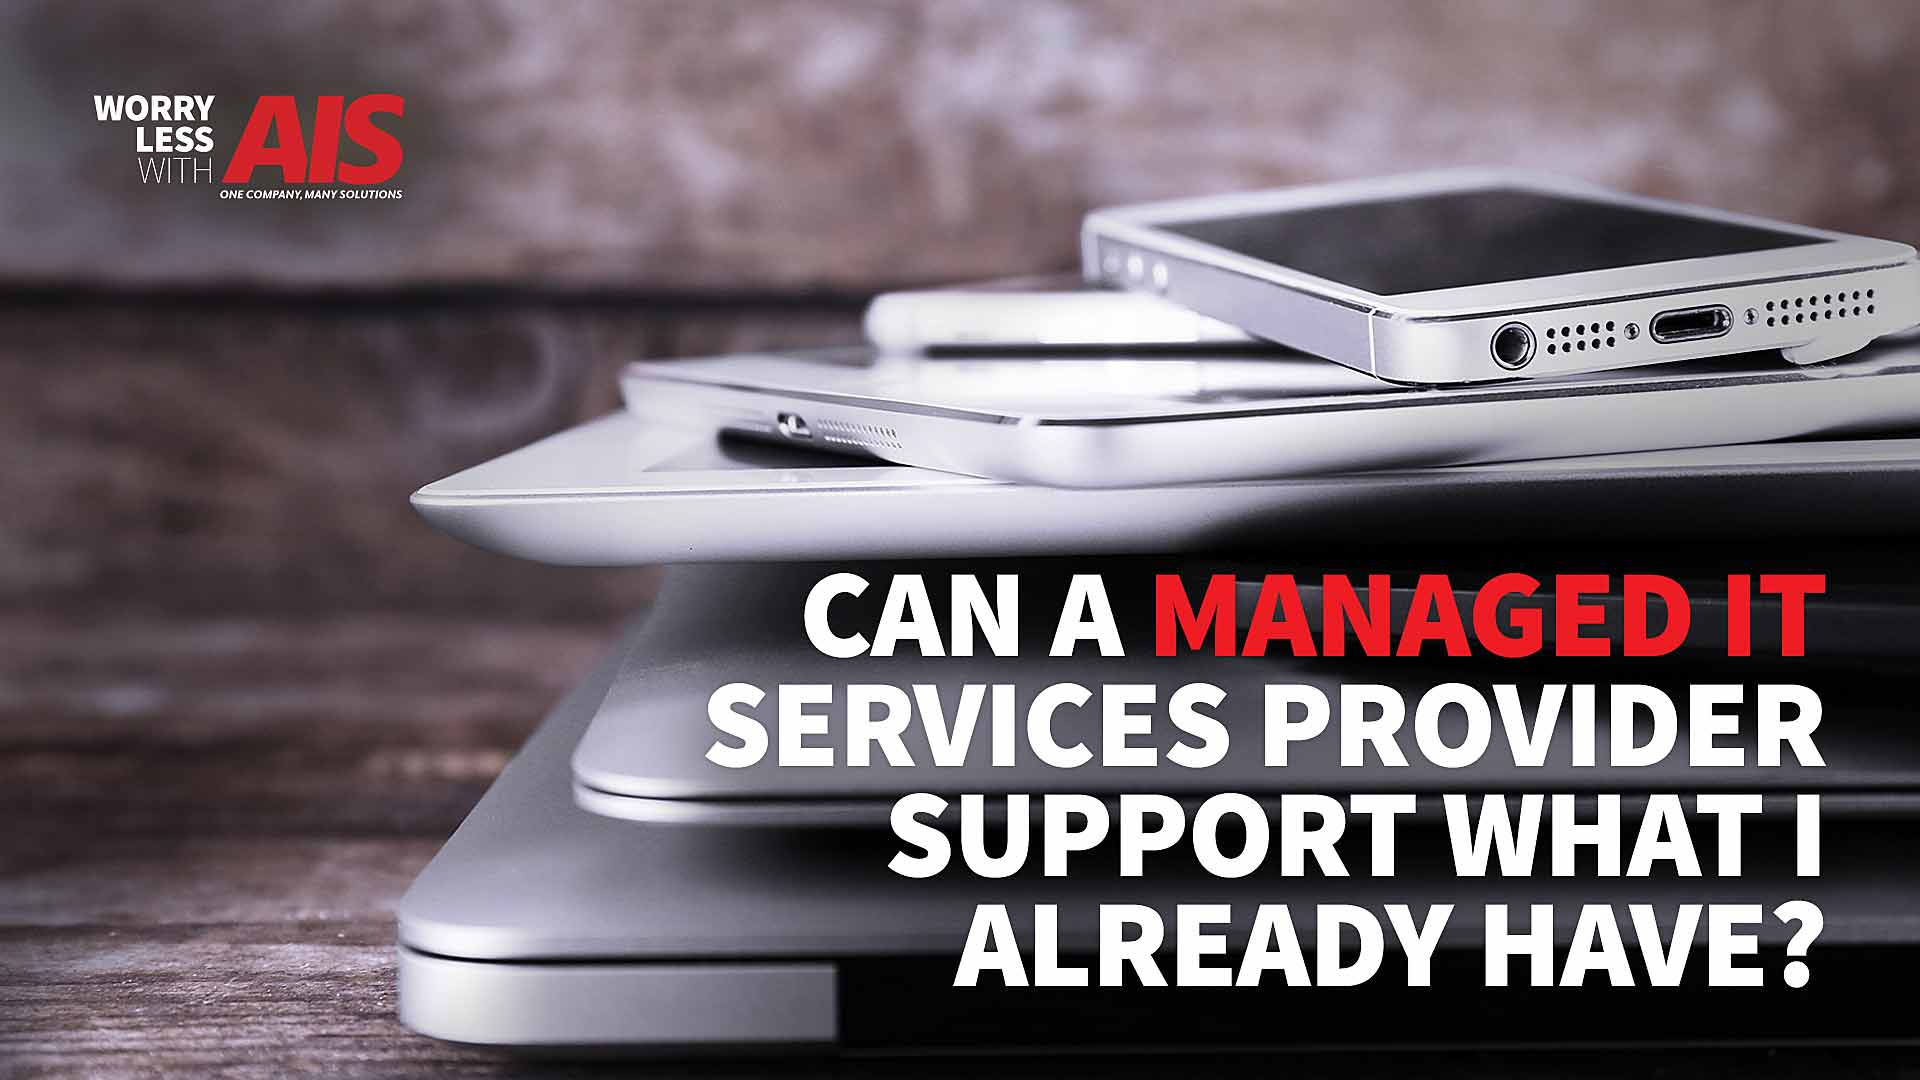 Can a Managed IT Services Provider Support What I Already Have?